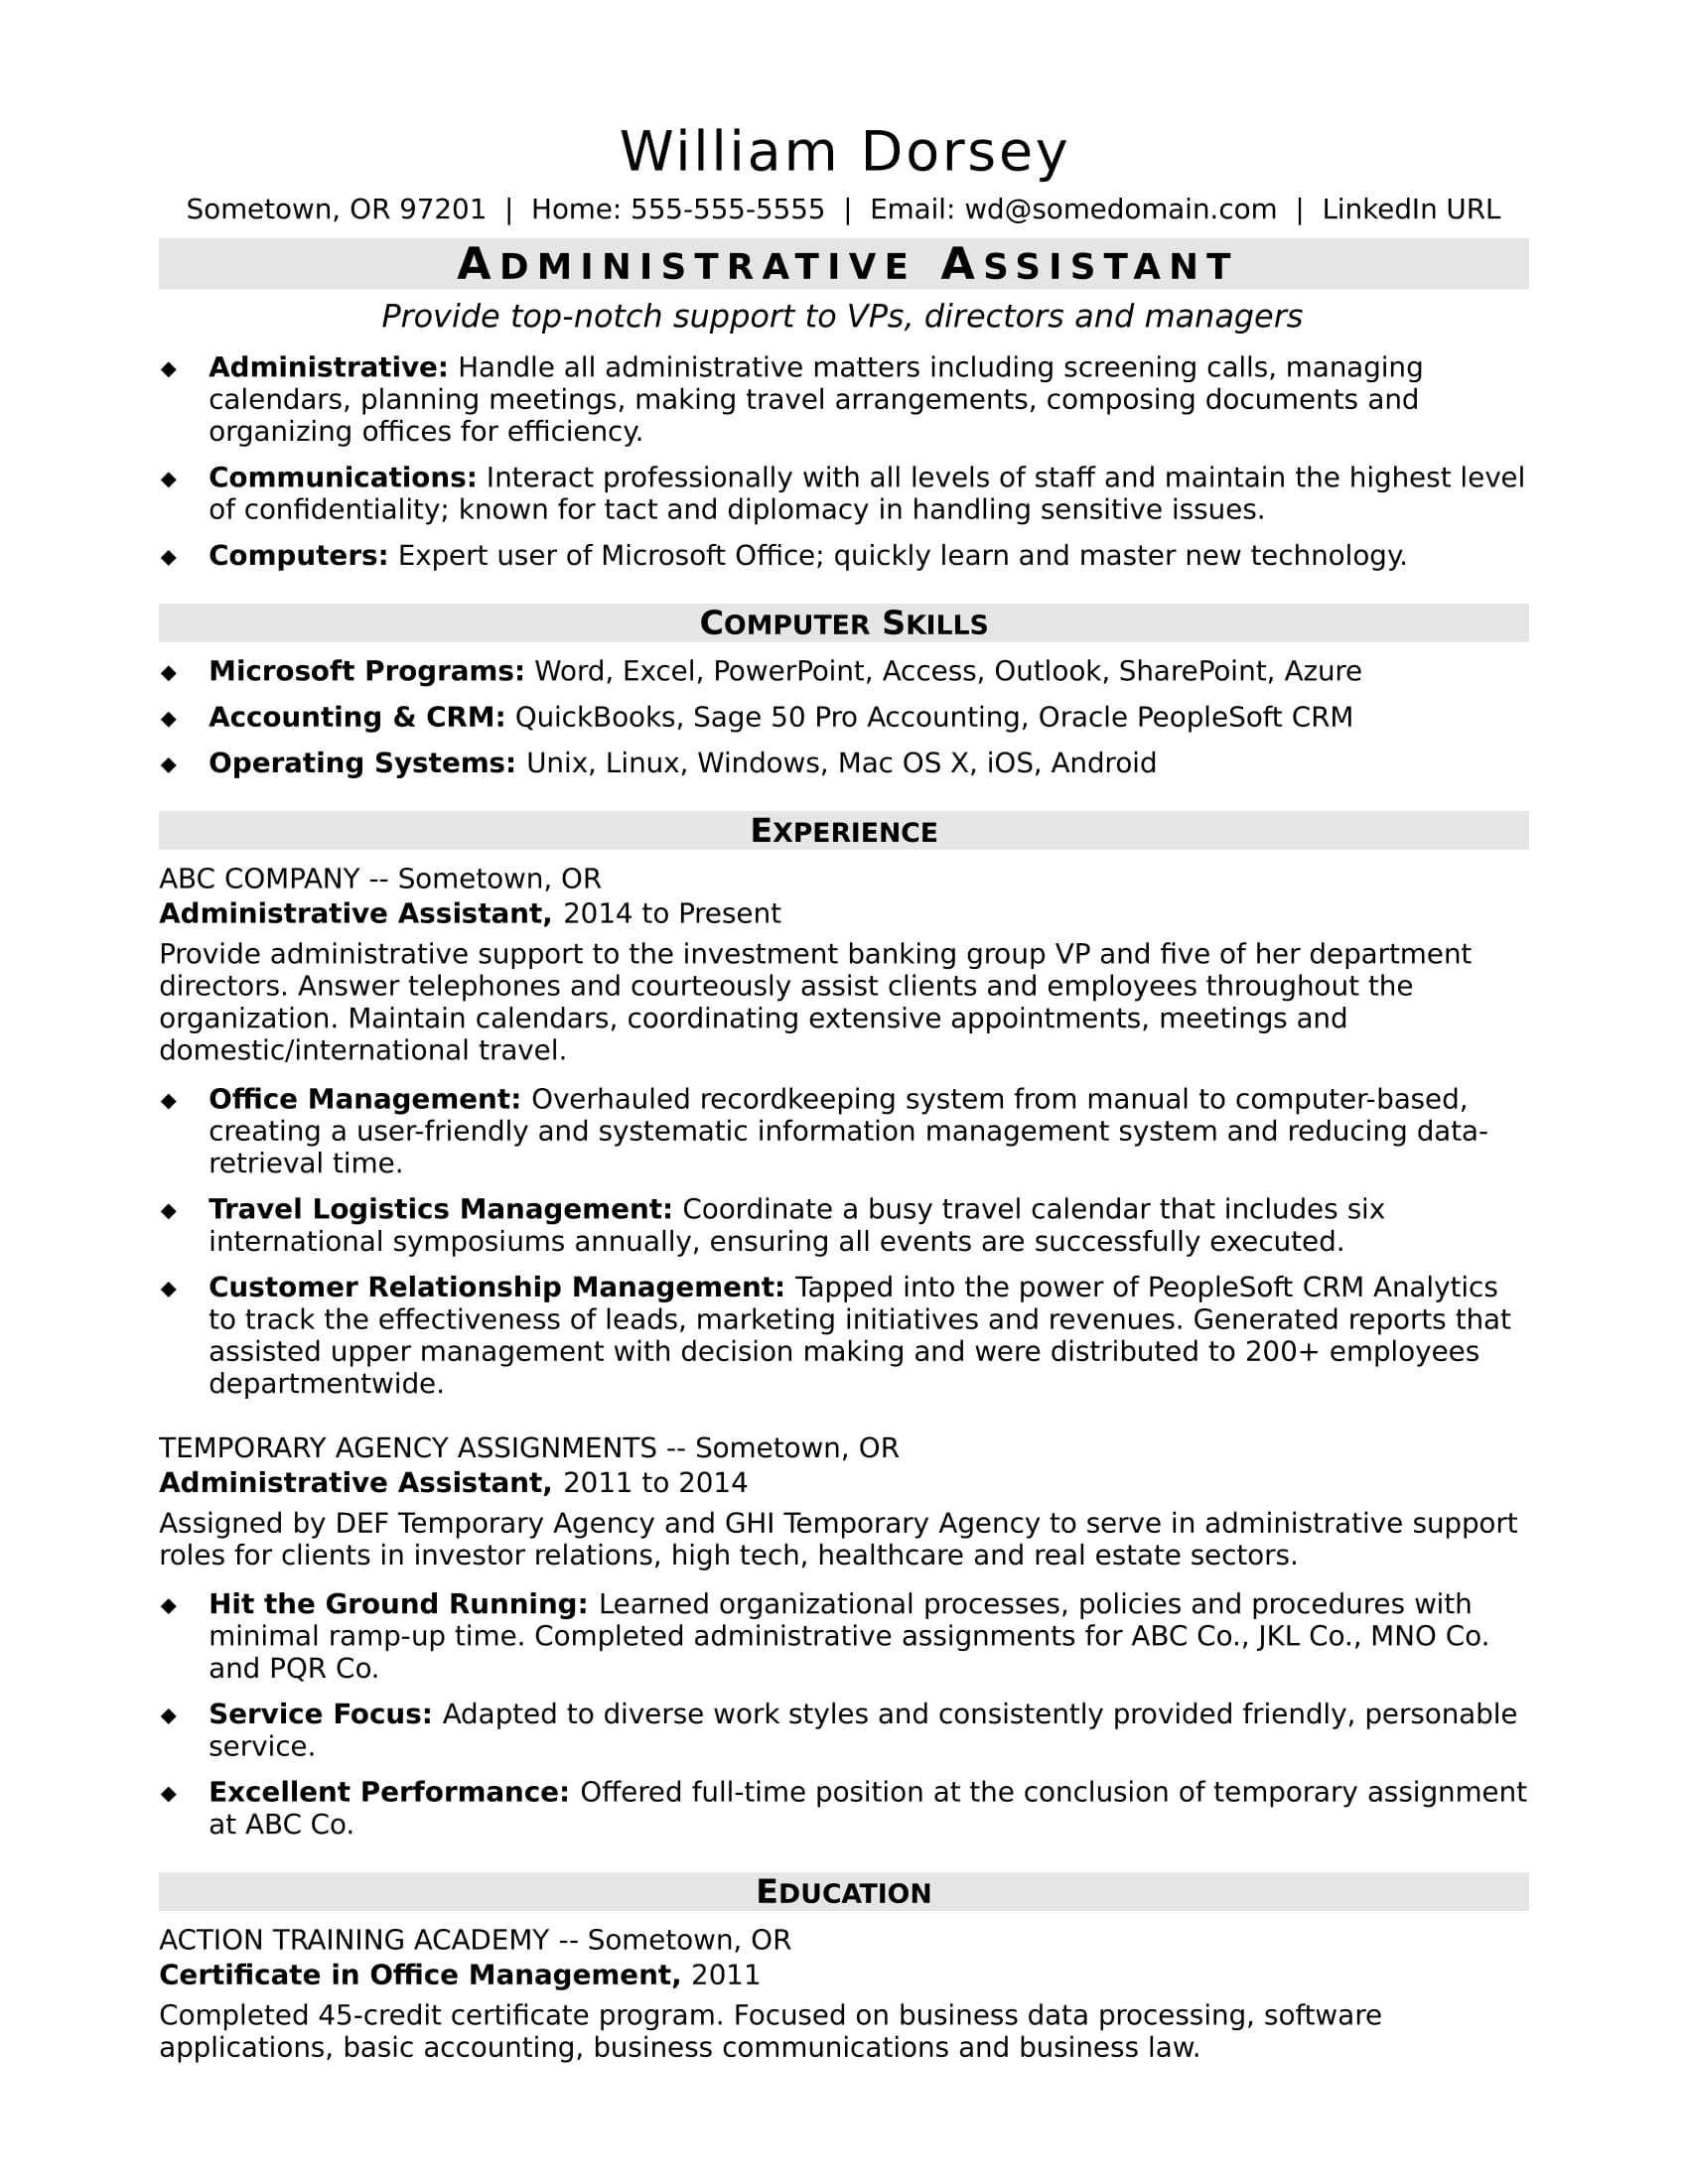 midlevel administrative assistant resume sample monster specialist fedex restaurant Resume Administrative Specialist Resume